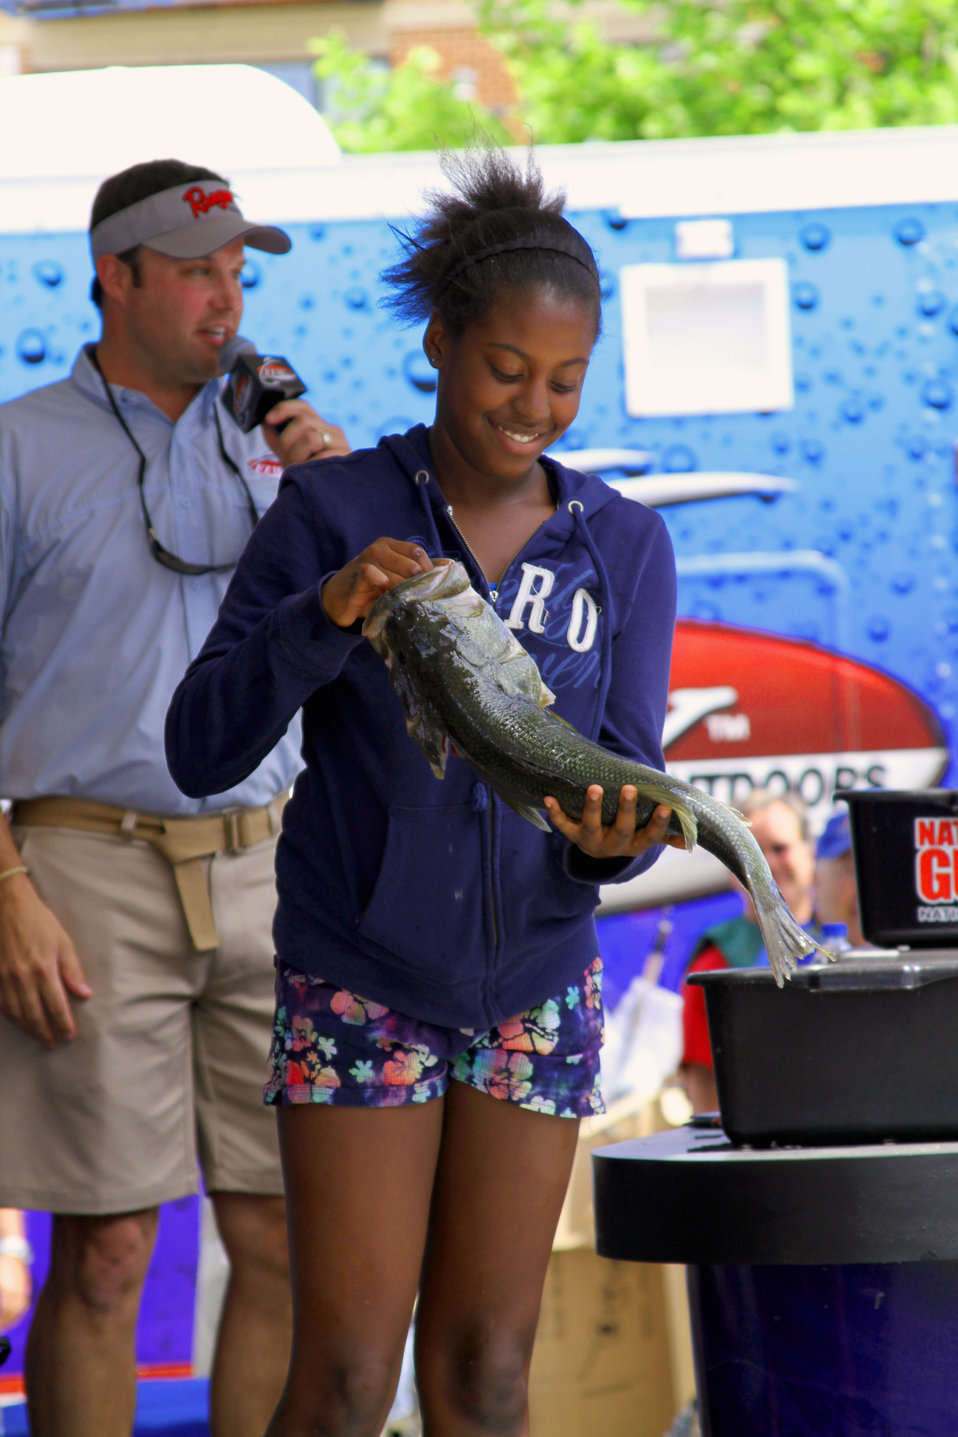 The winner of the morning's fishing contest at the National Harbor in Washington D.C.  A 6 pound Bass!